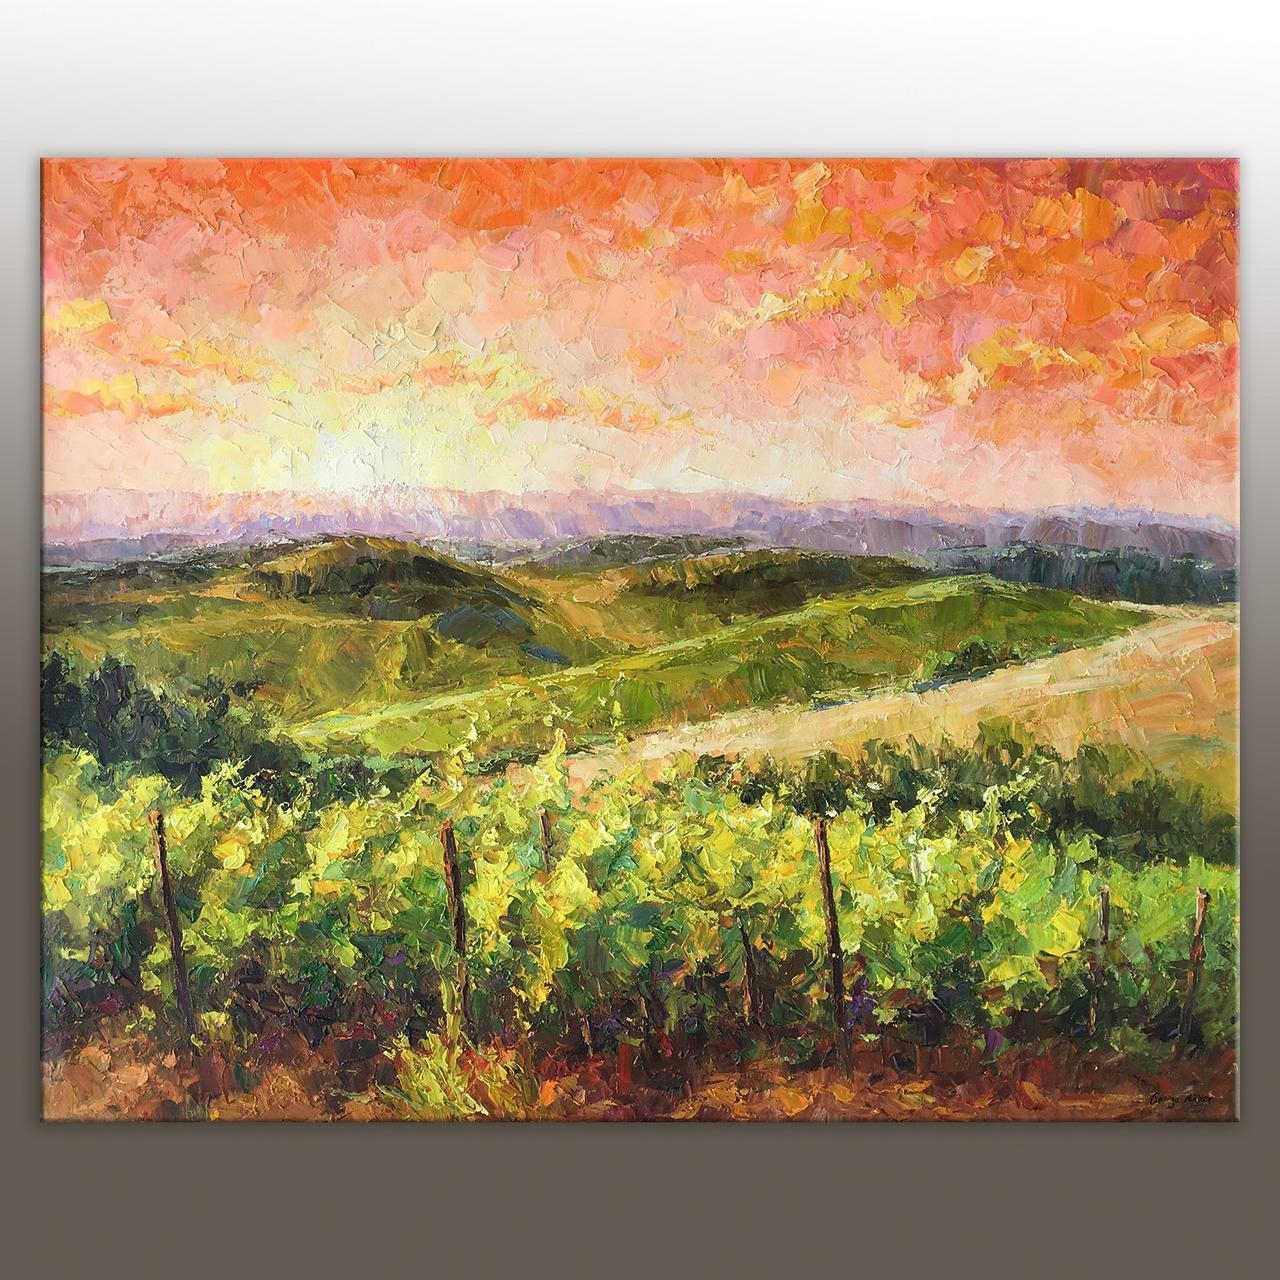 Oil Painting Italian Tuscany Vineyard Landscape Painting Throughout Vineyard Wall Art (Image 11 of 20)